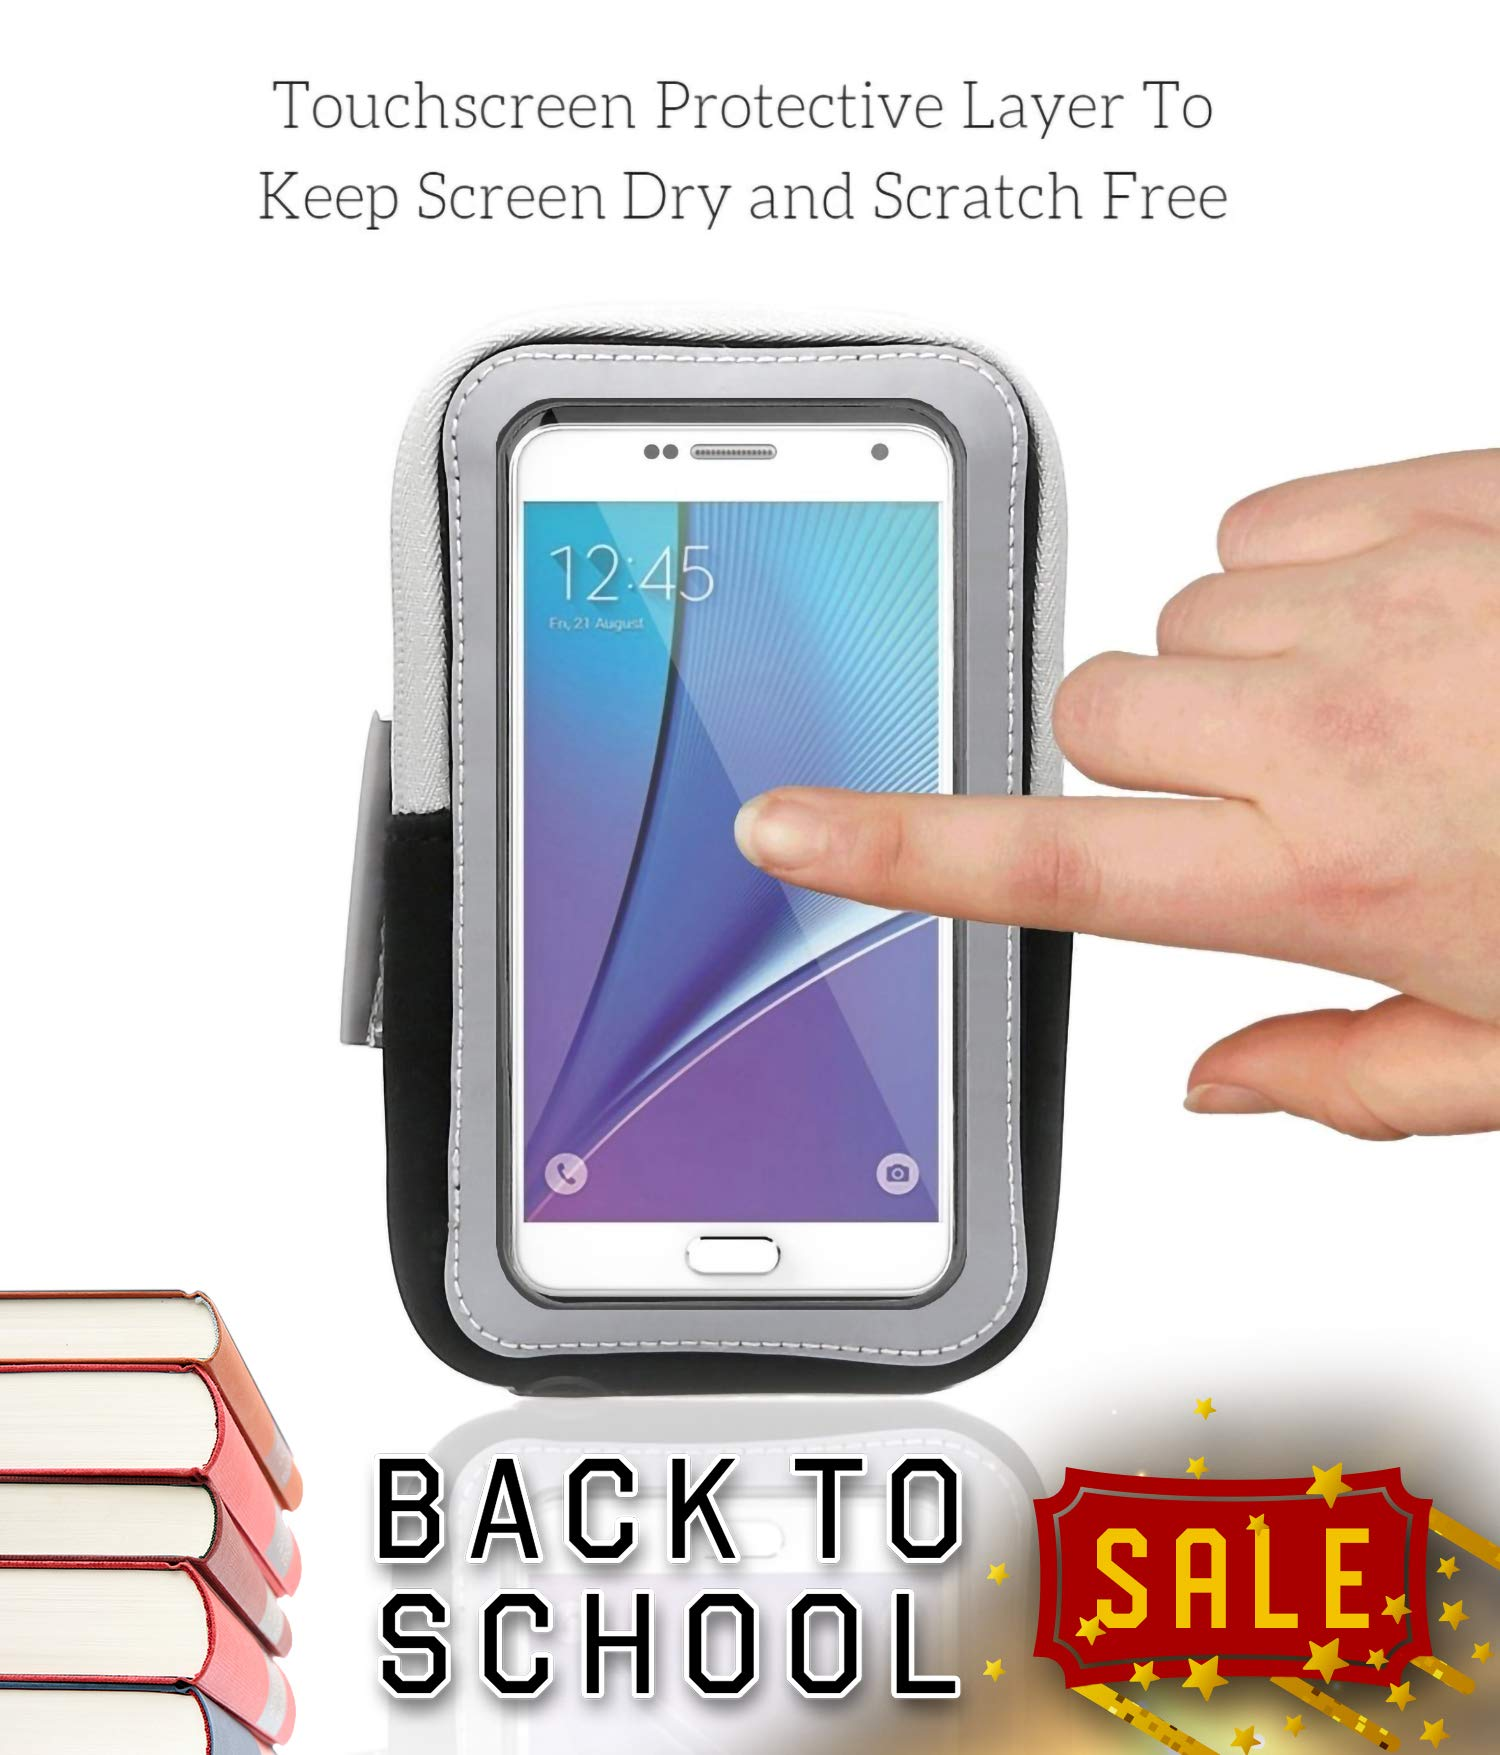 Sports Armband: Cell Phone Holder Case Arm Band Strap With Zipper Pouch/ Mobile Exercise Running Workout For Apple iPhone 6 6S 7 Plus Touch Android Samsung Galaxy S5 S6 S7 Note 4 5 Edge LG HTC Pixel by E Tronic Edge (Image #4)